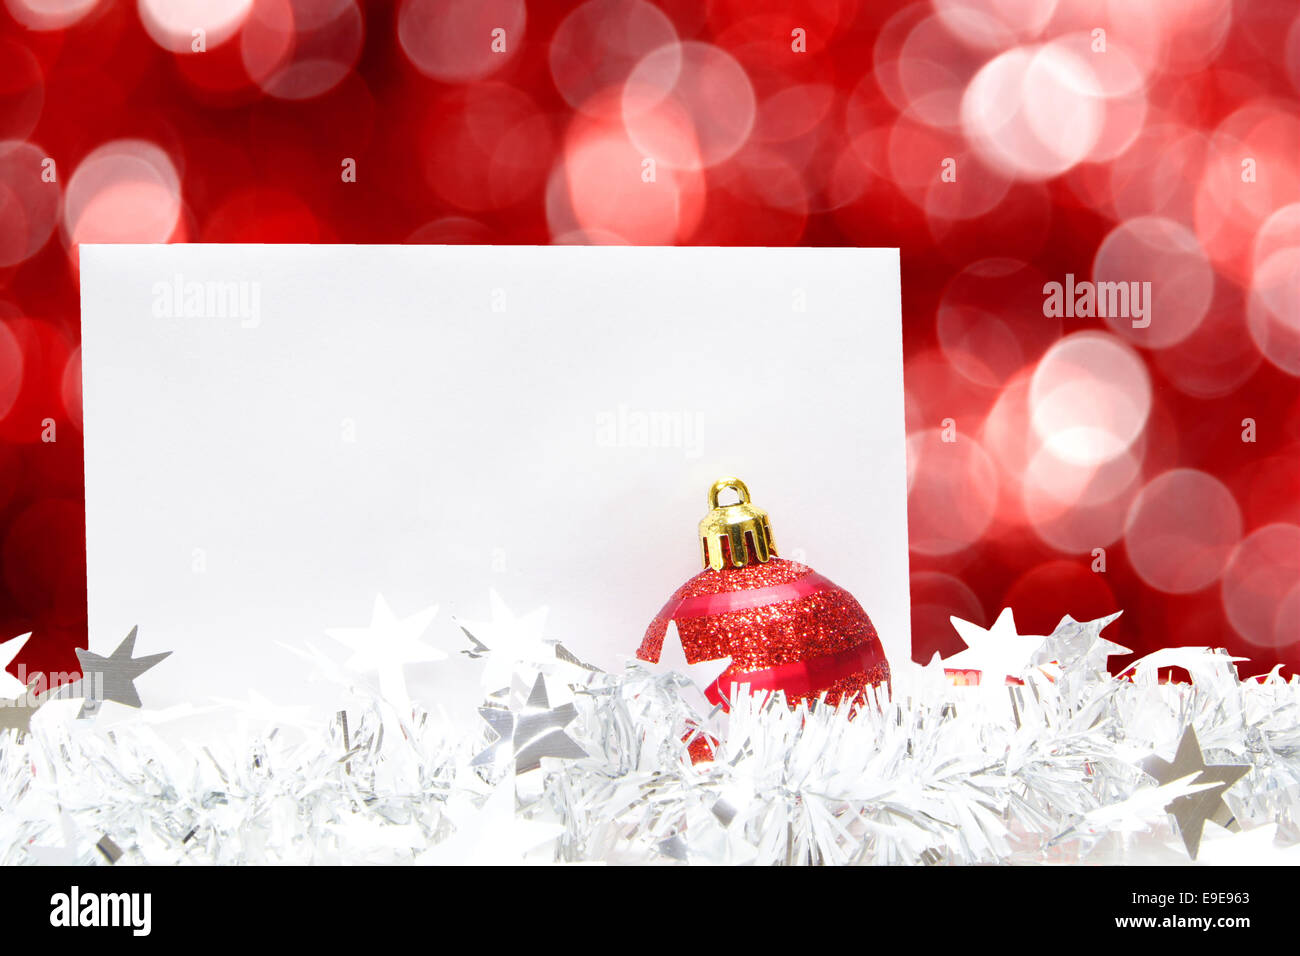 Blank white Christmas greeting card with bauble, garland and twinkling red background - Stock Image